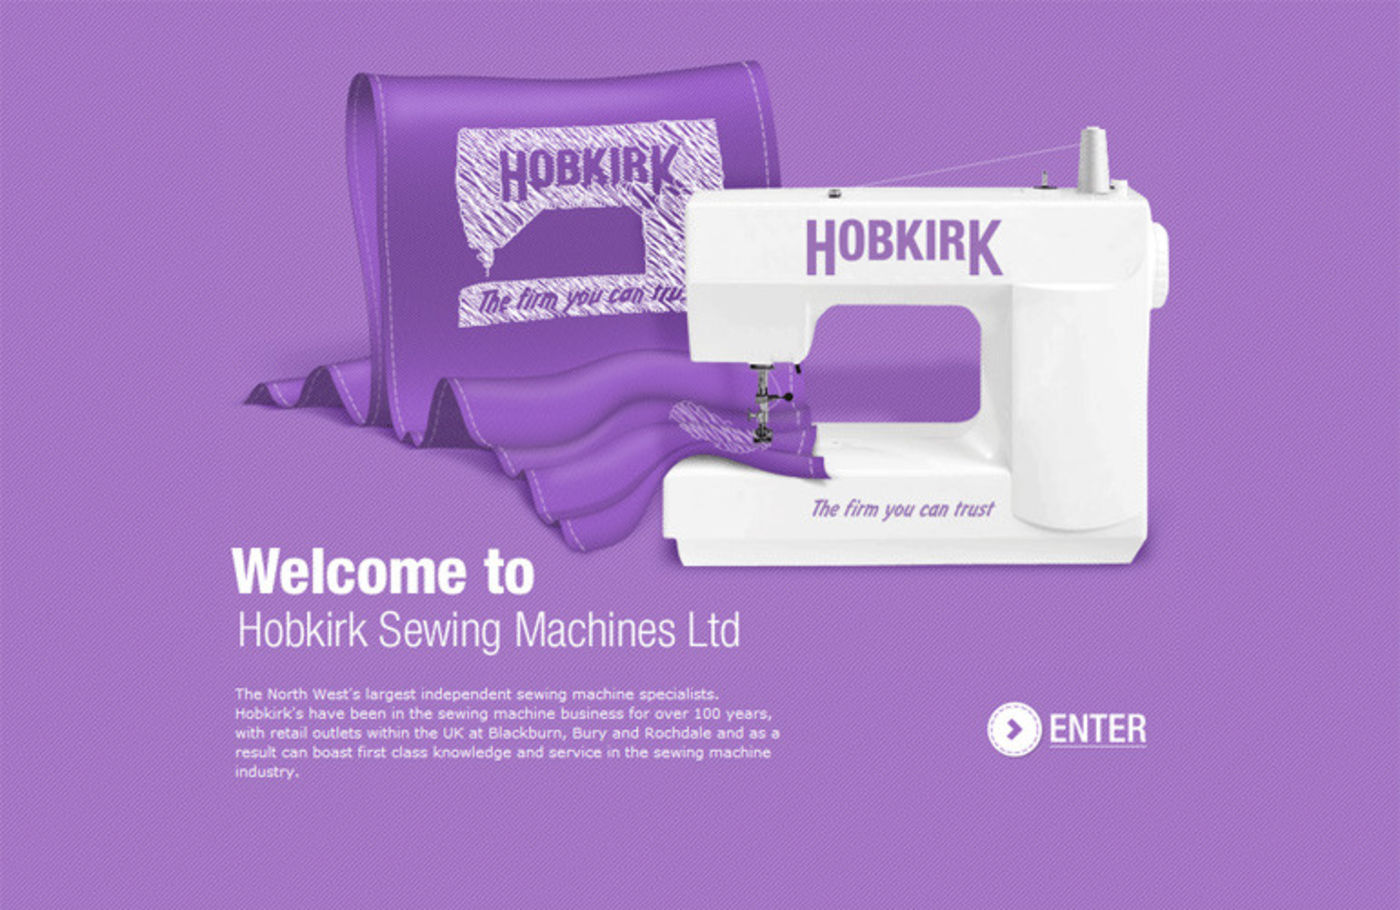 Sewing Machines from Hobkirk Welcome